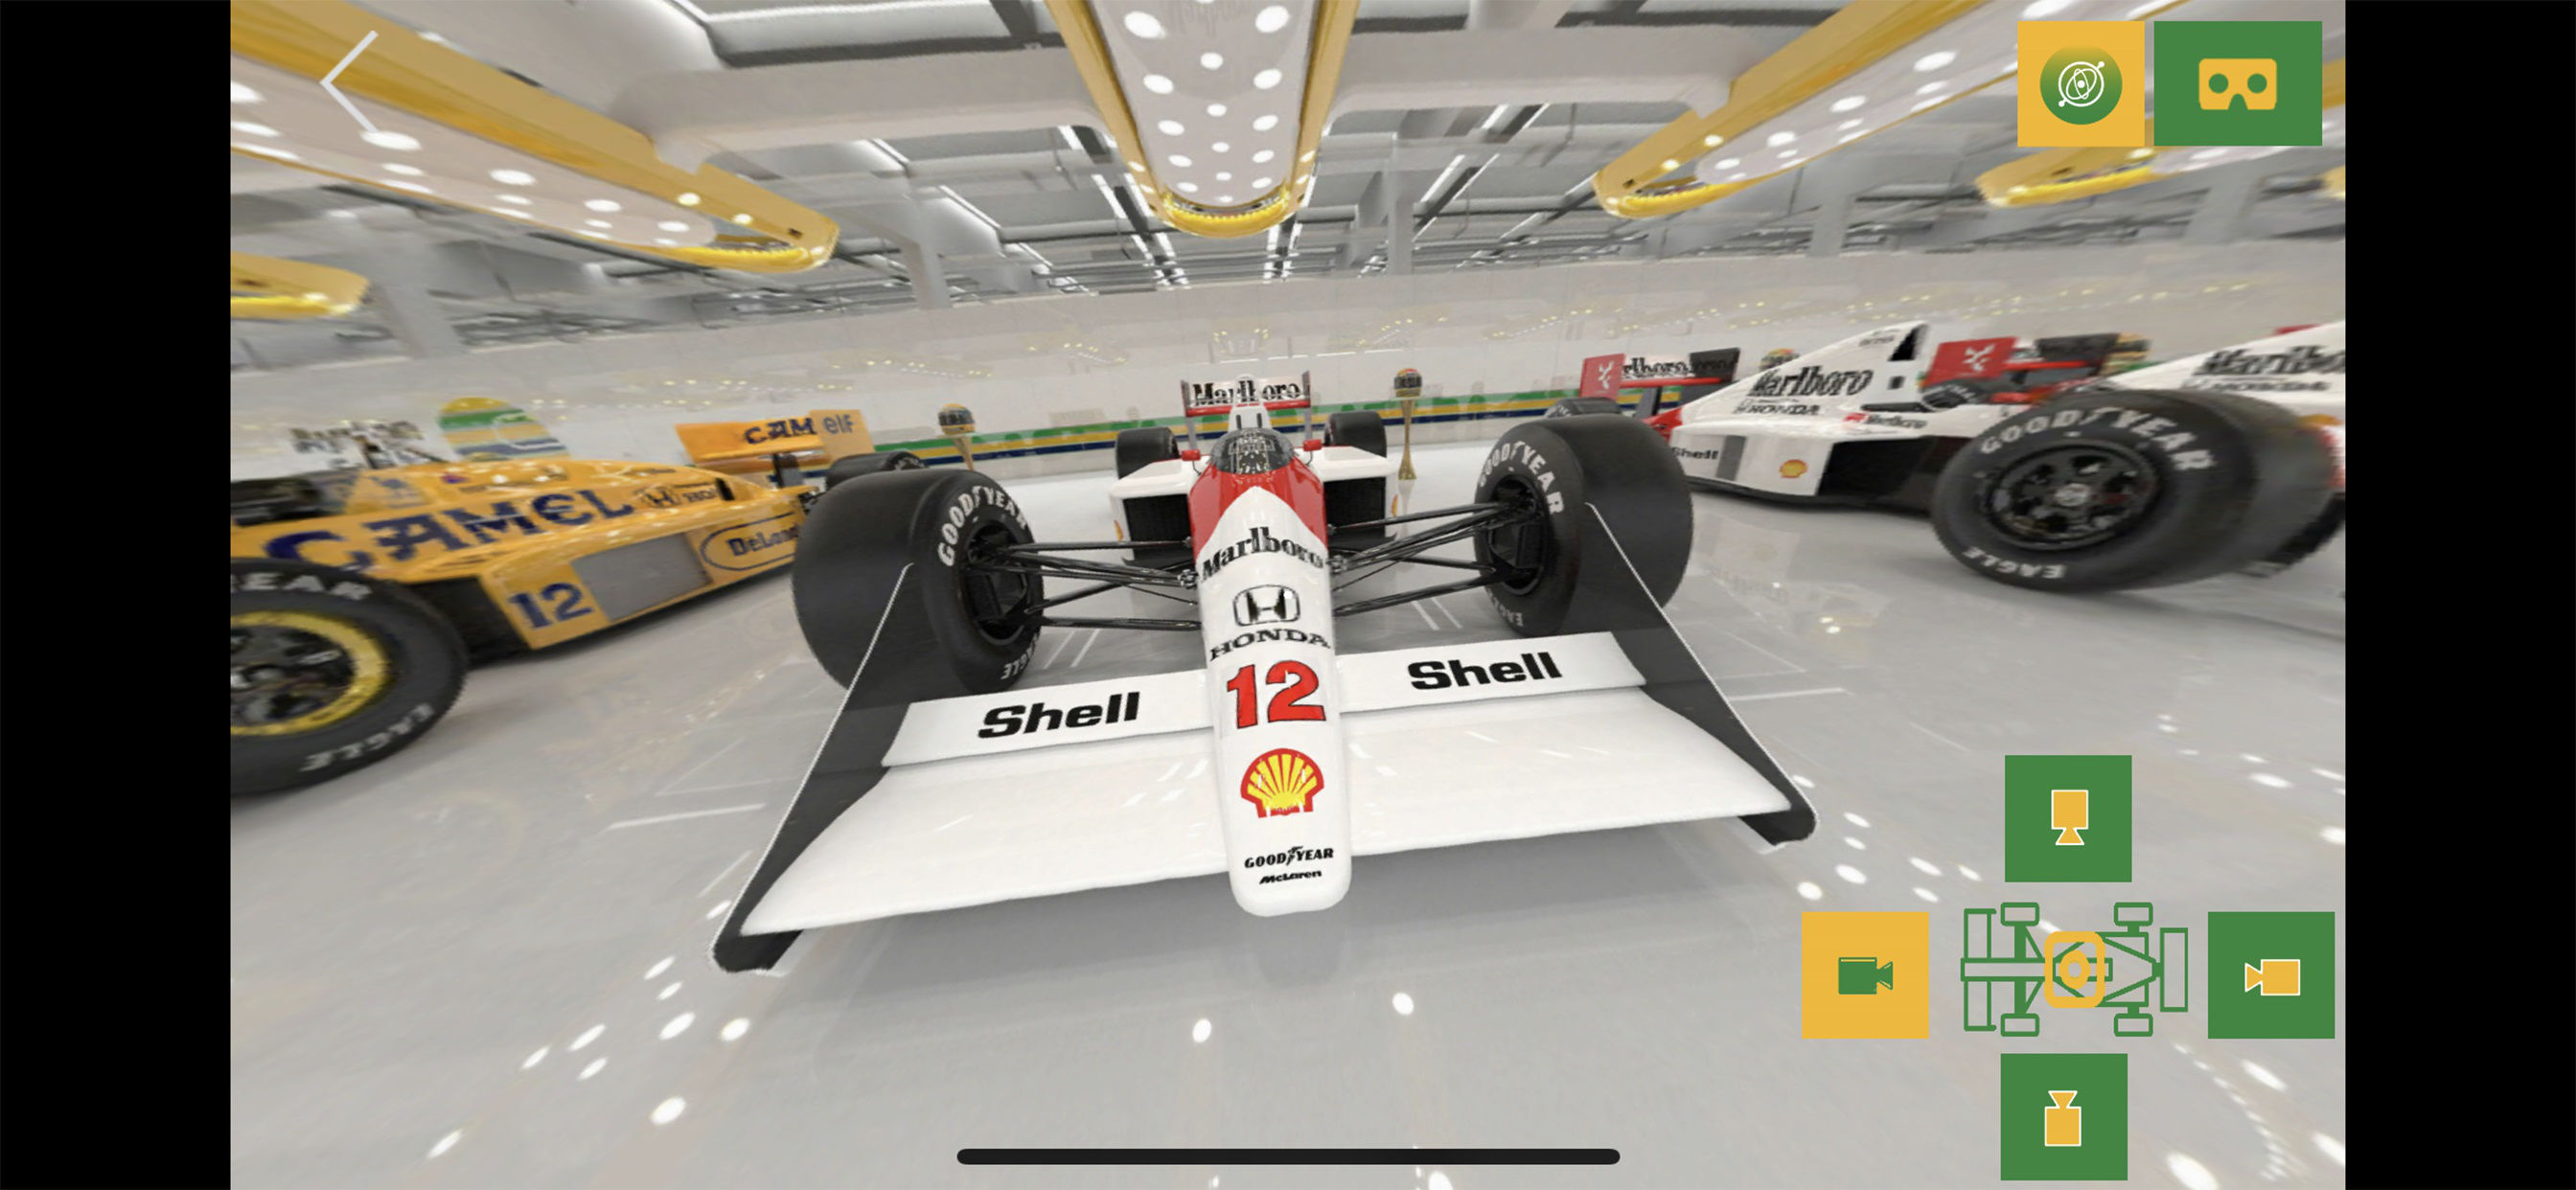 Senna 360 mobile apps and web experience.